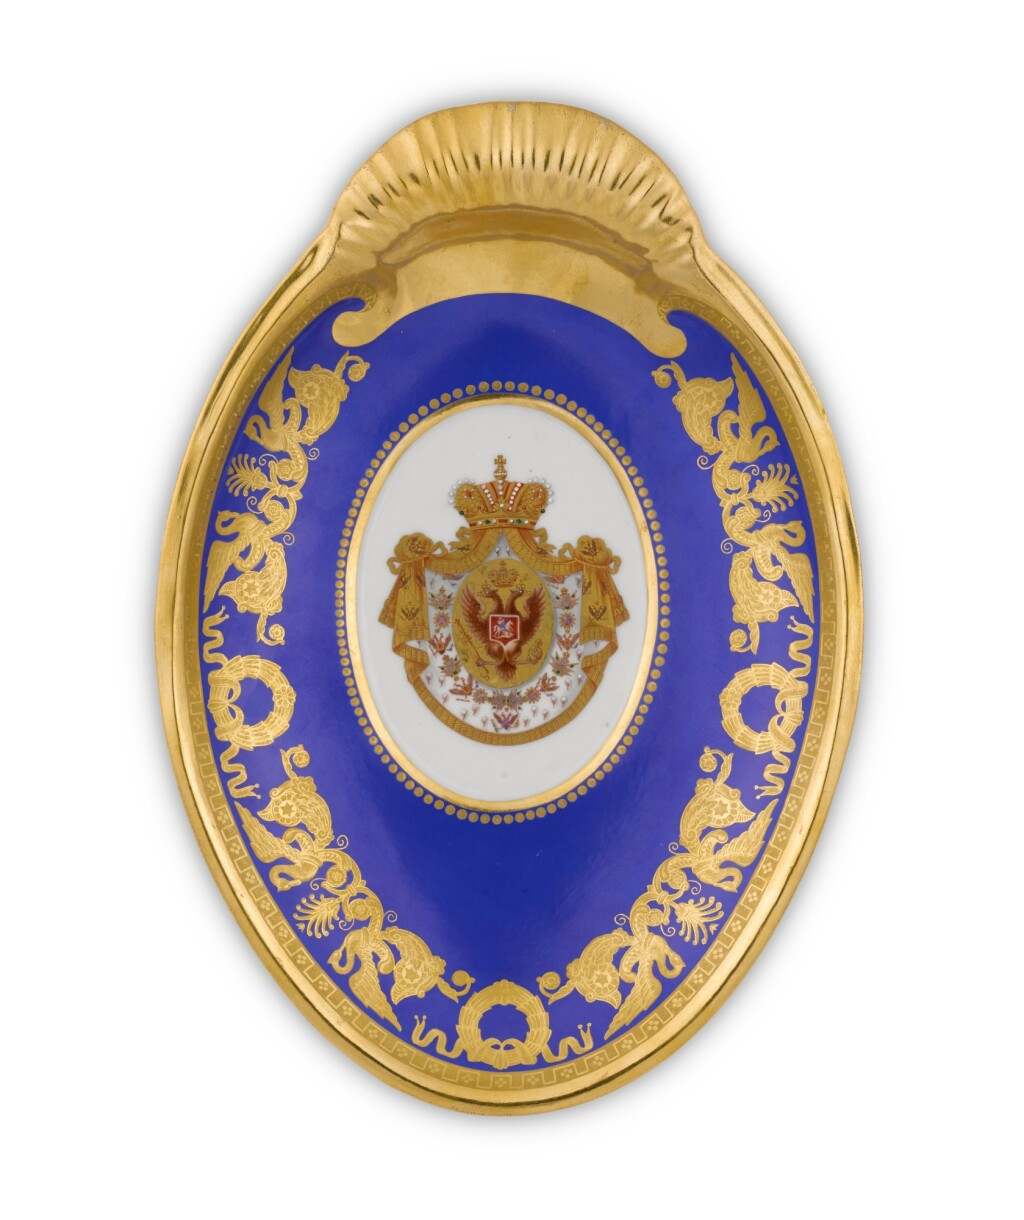 A PORCELAIN SERVING DISH FROM THE CORONATION SERVICE OF NICHOLAS I, IMPERIAL PORCELAIN FACTORY, ST PETERSBURG, PERIOD OF NICHOLAS I (1825-1855)